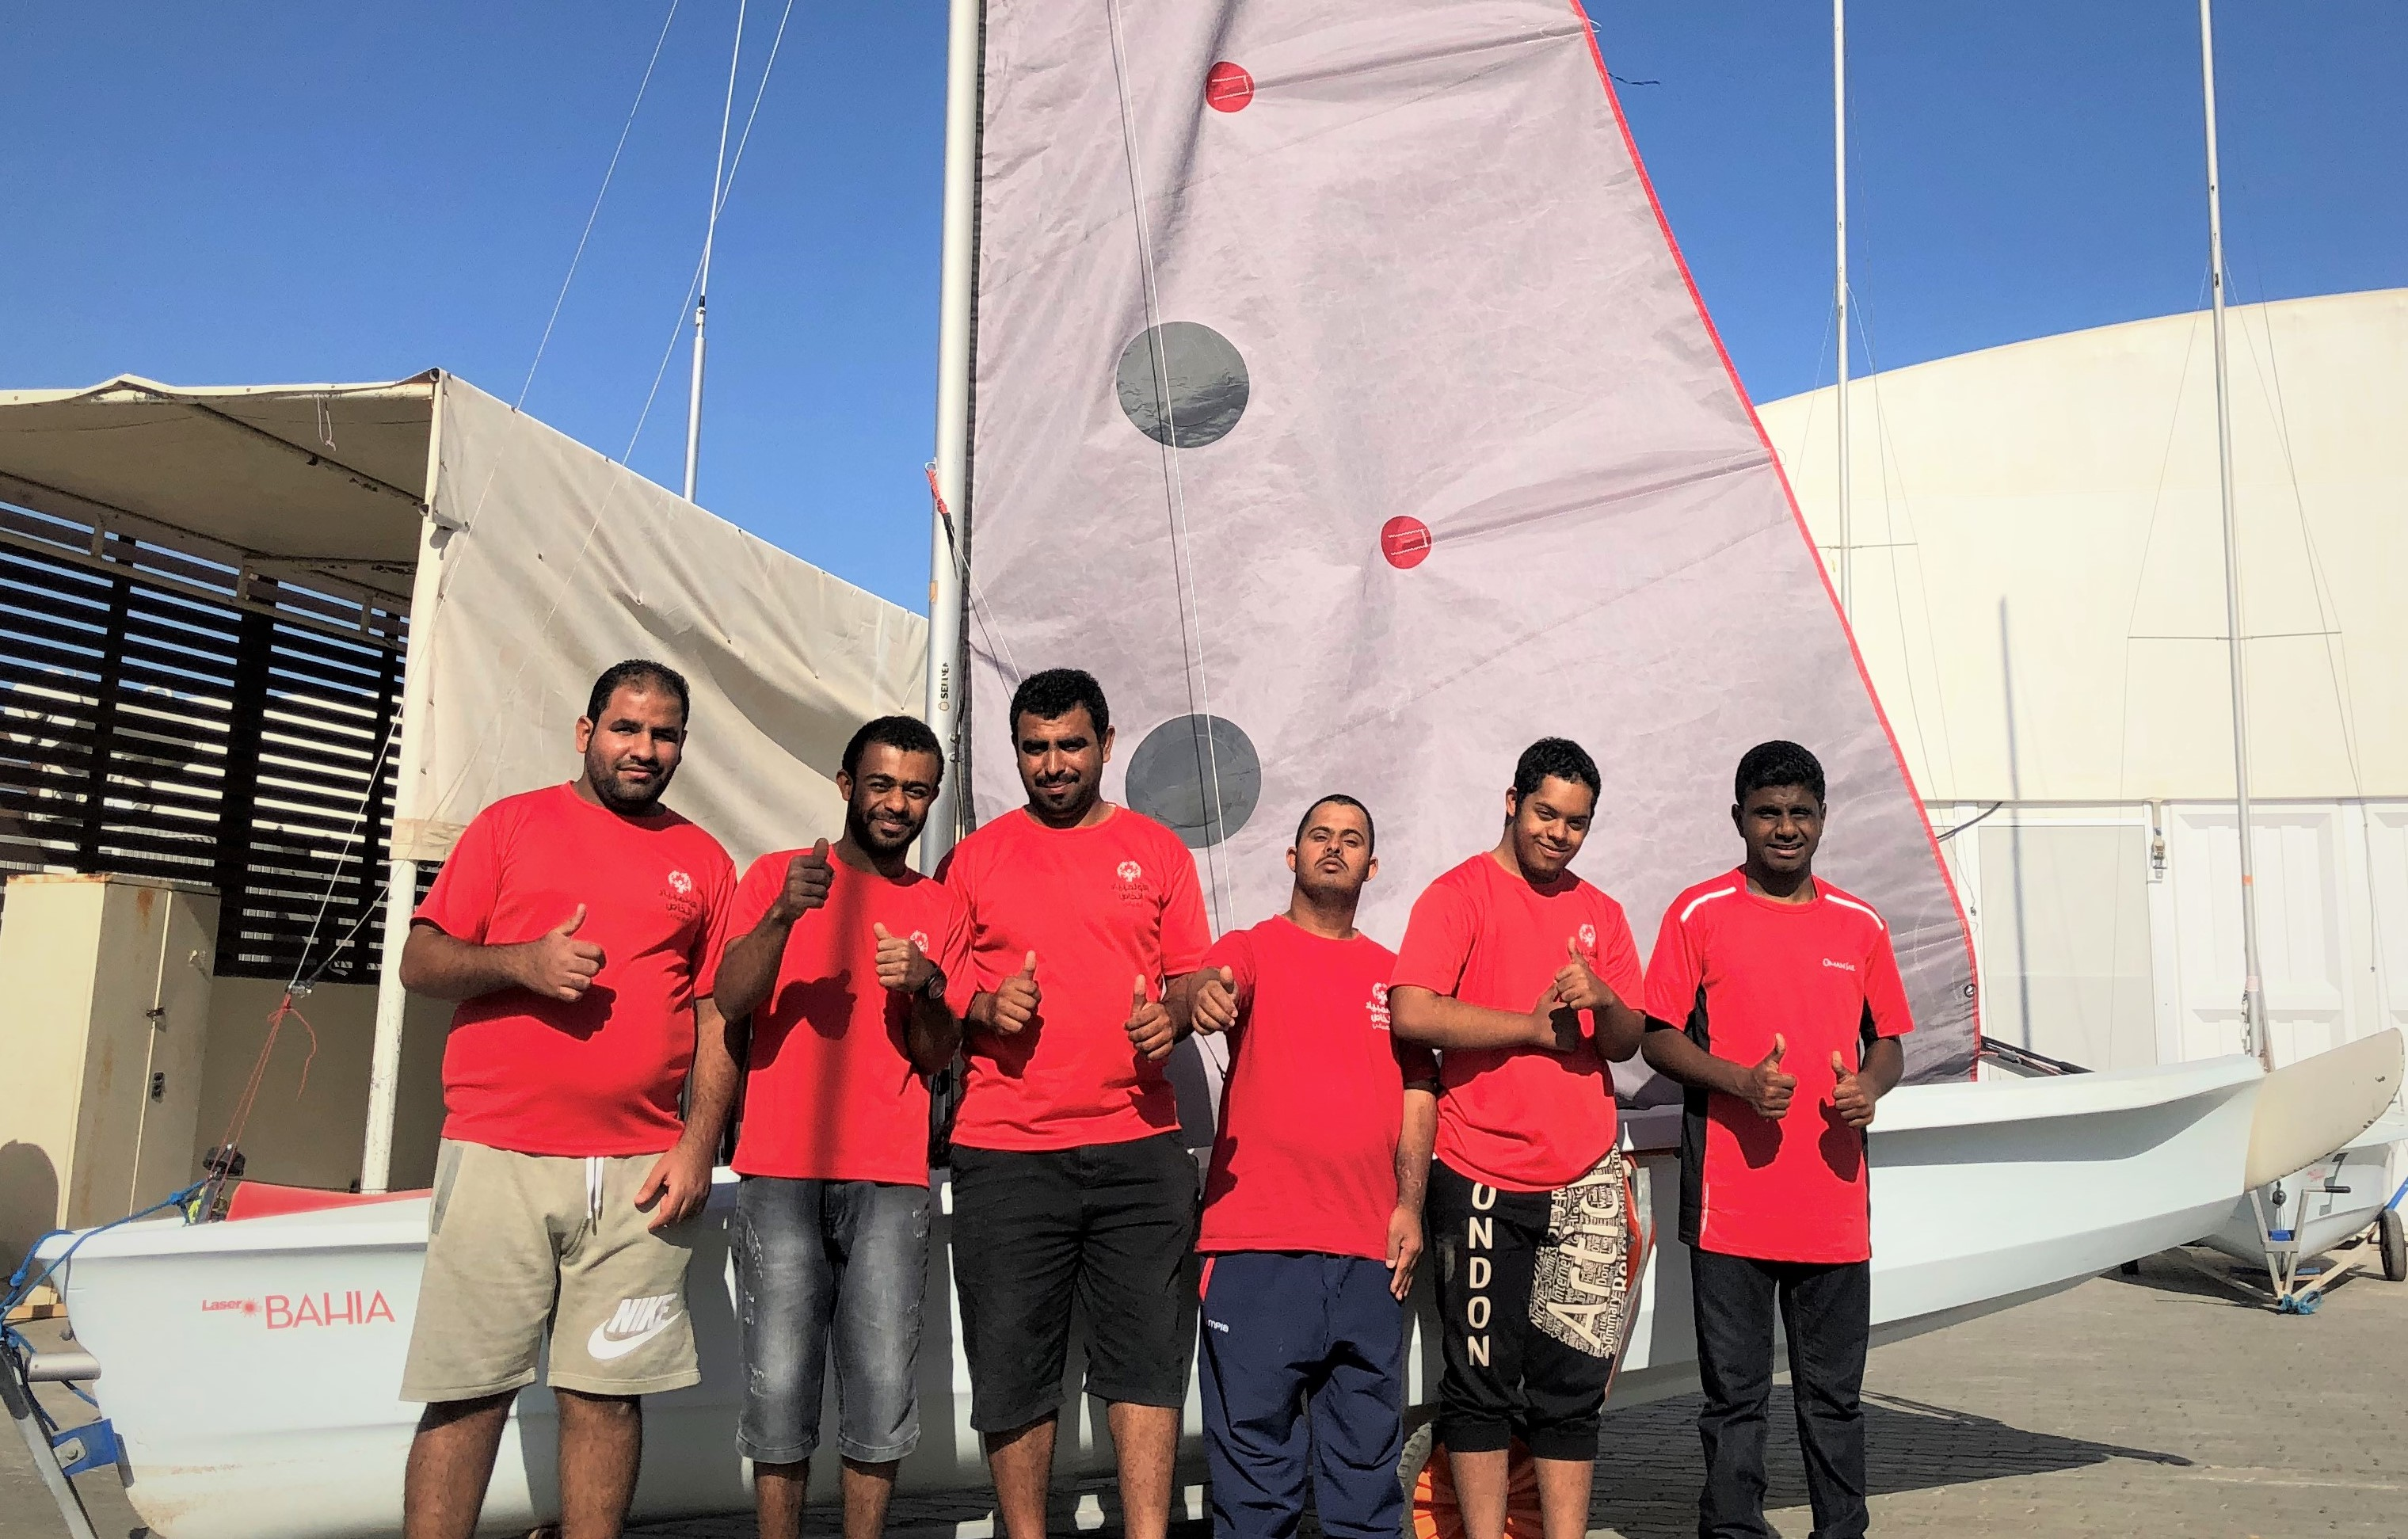 Oman Sail joins Middle East's first ever Special Olympics World Games with a team and race boats